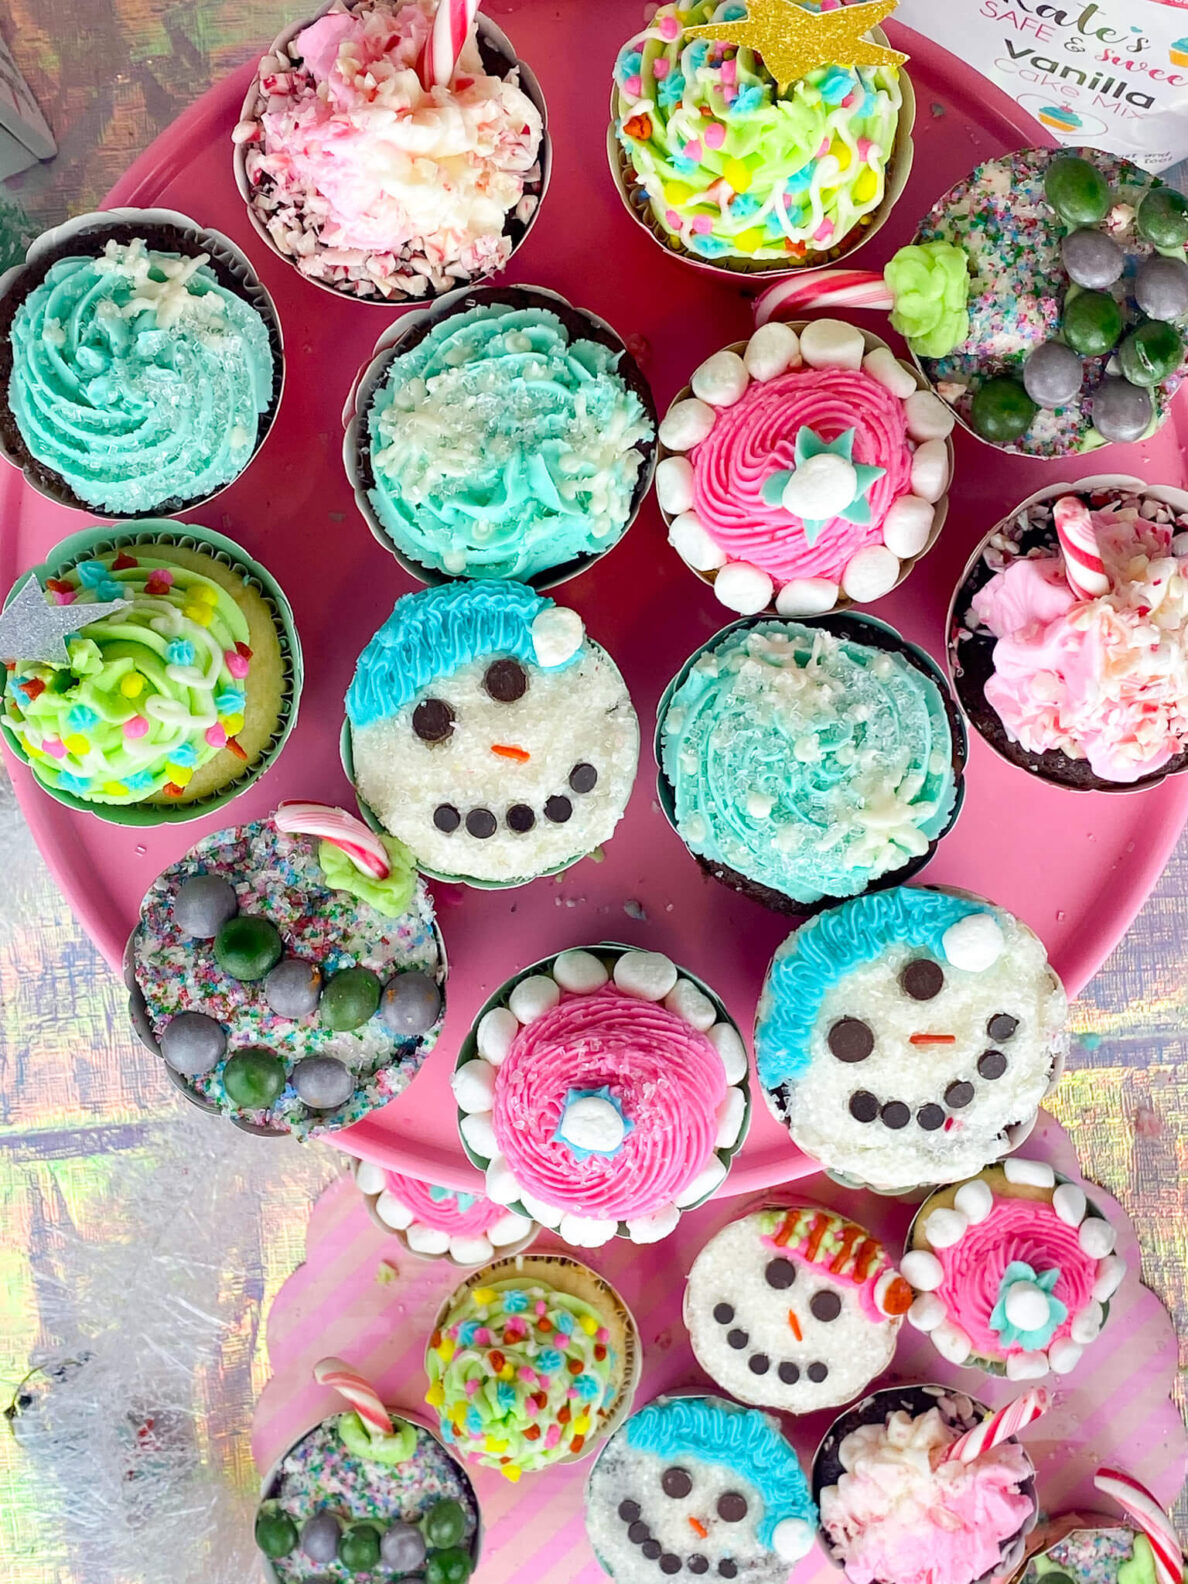 Kate's Safe and Sweet - All Cupcakes